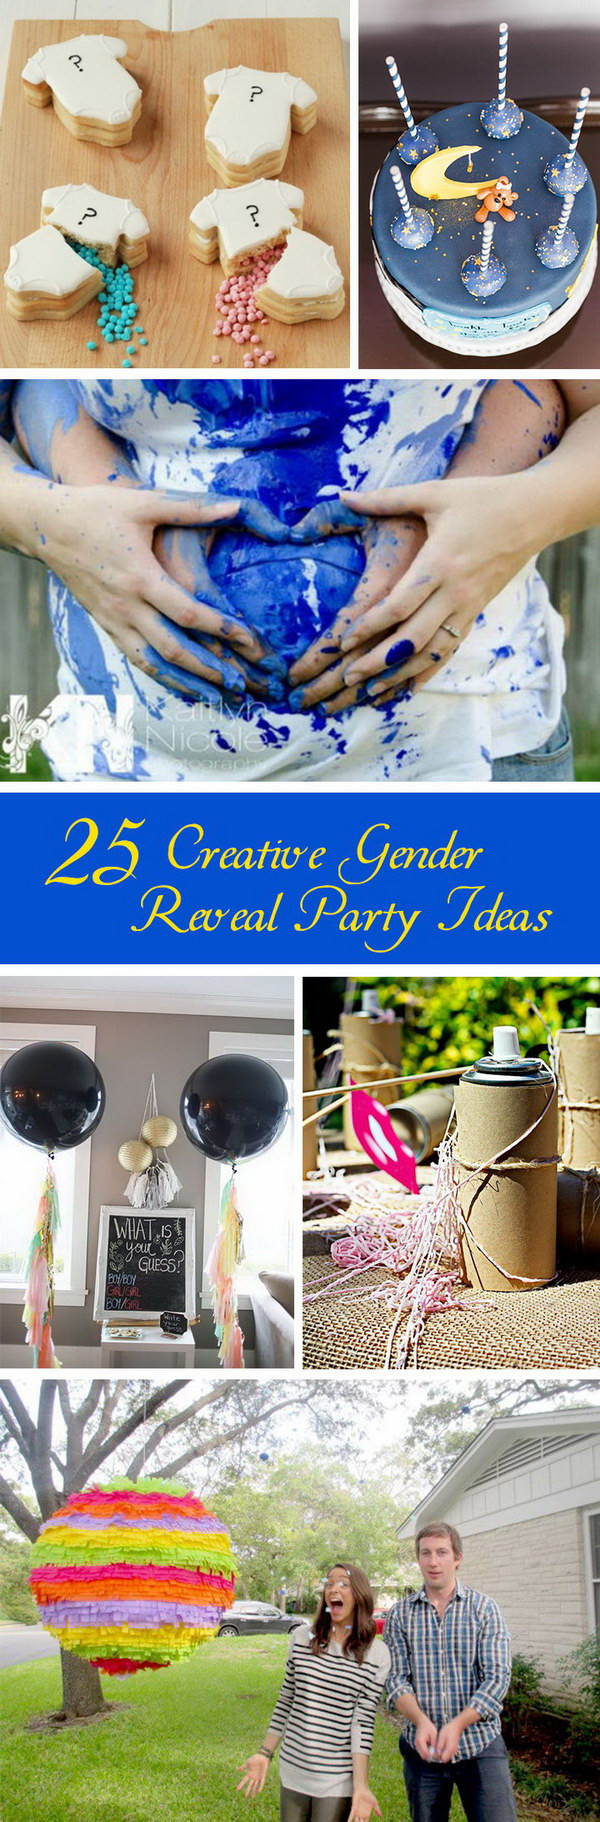 Gender Reveal Party Theme Ideas  25 Creative Gender Reveal Party Ideas Hative